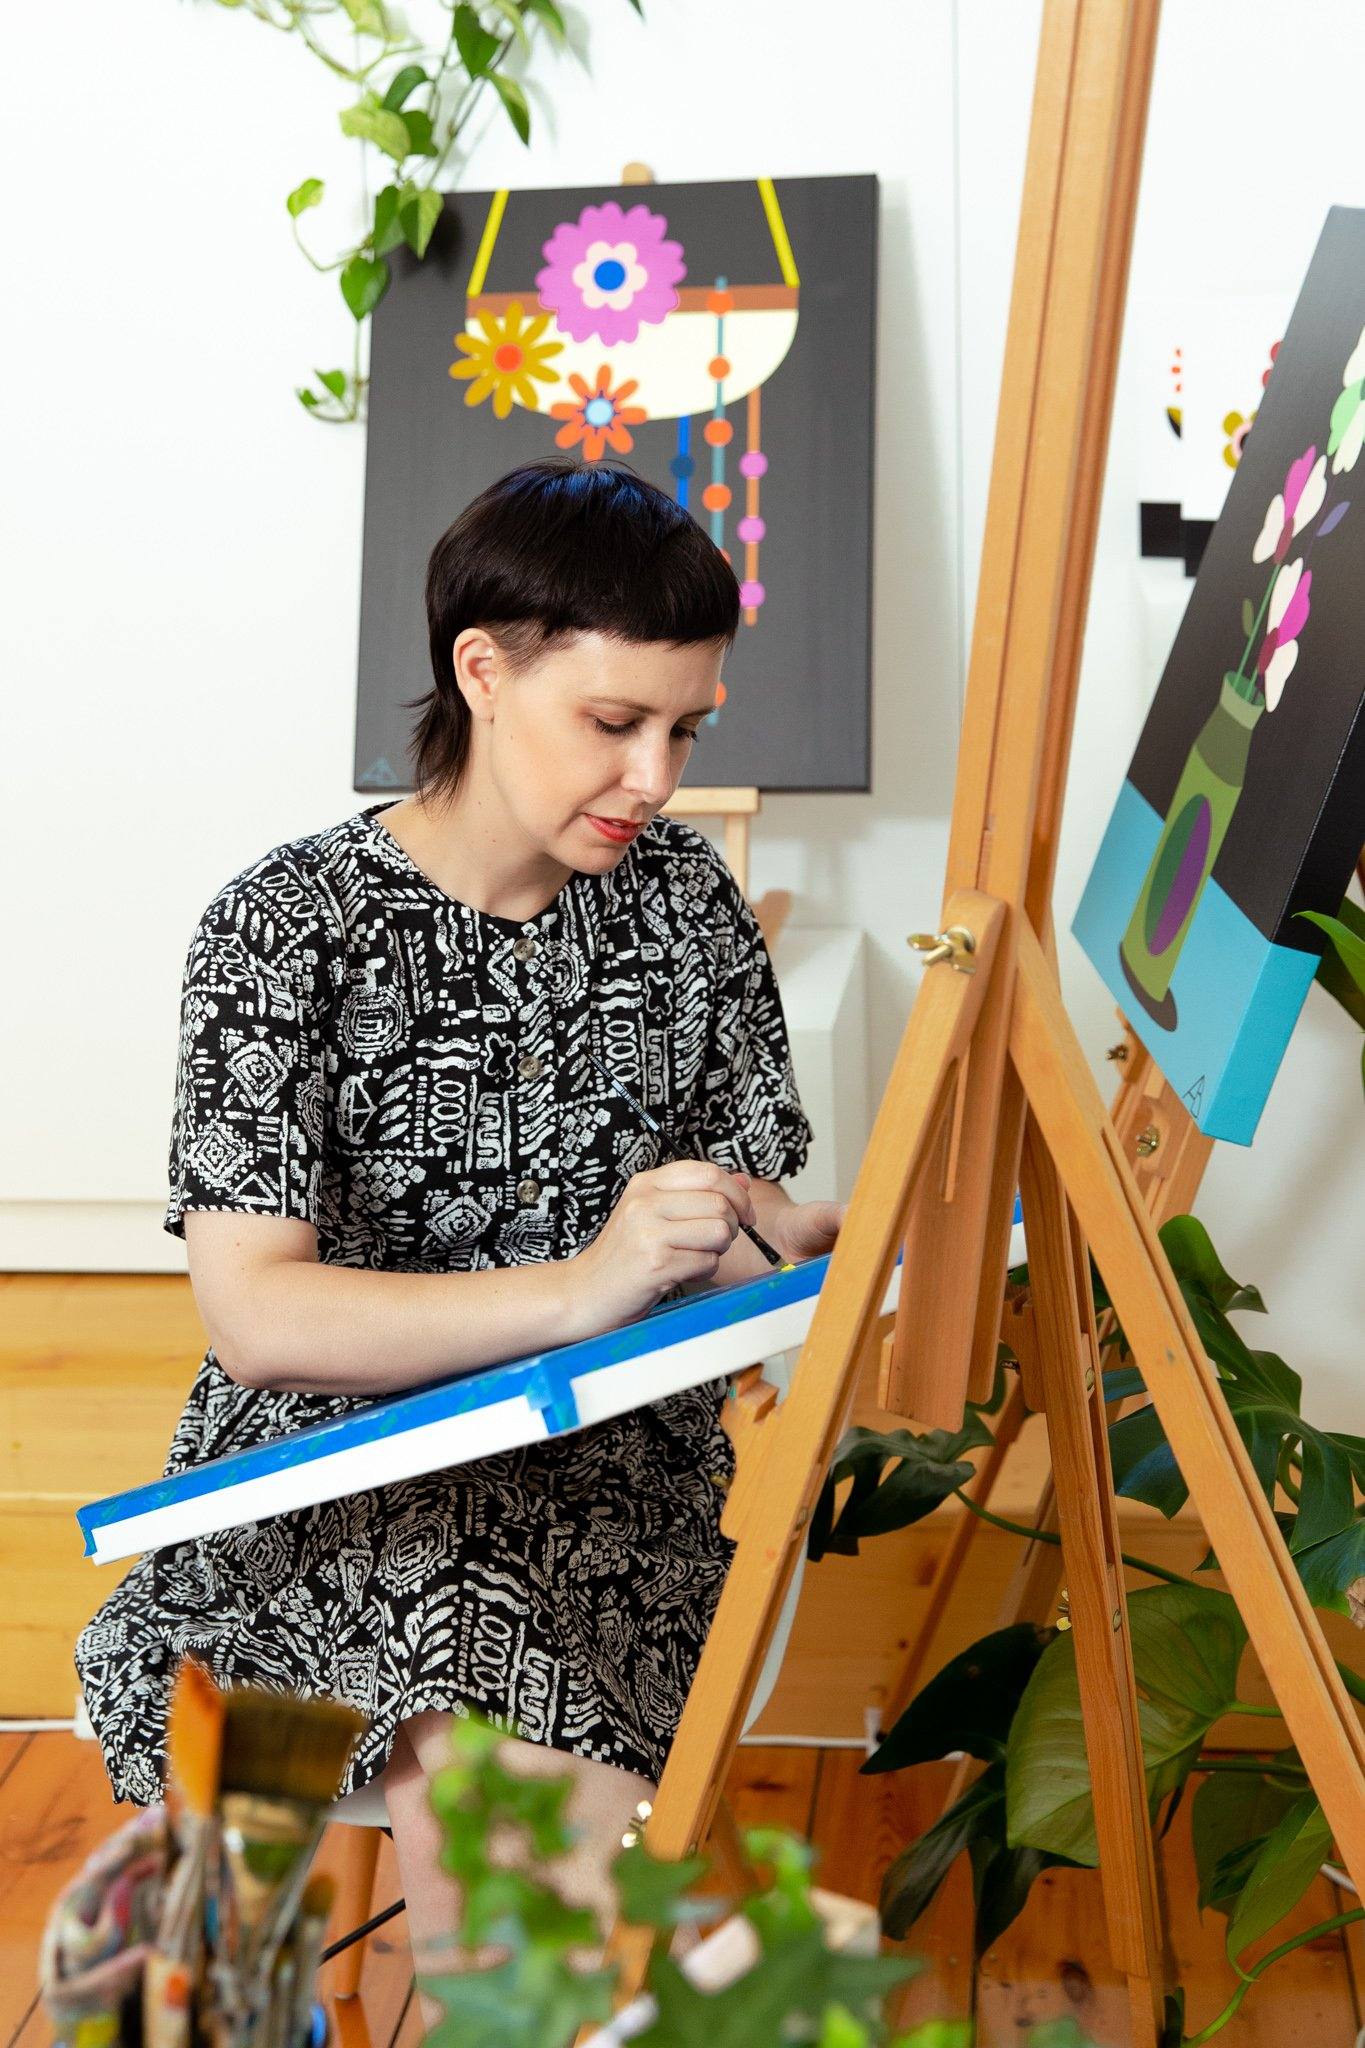 Andria Beighton painting her Soul-inspired artwork.